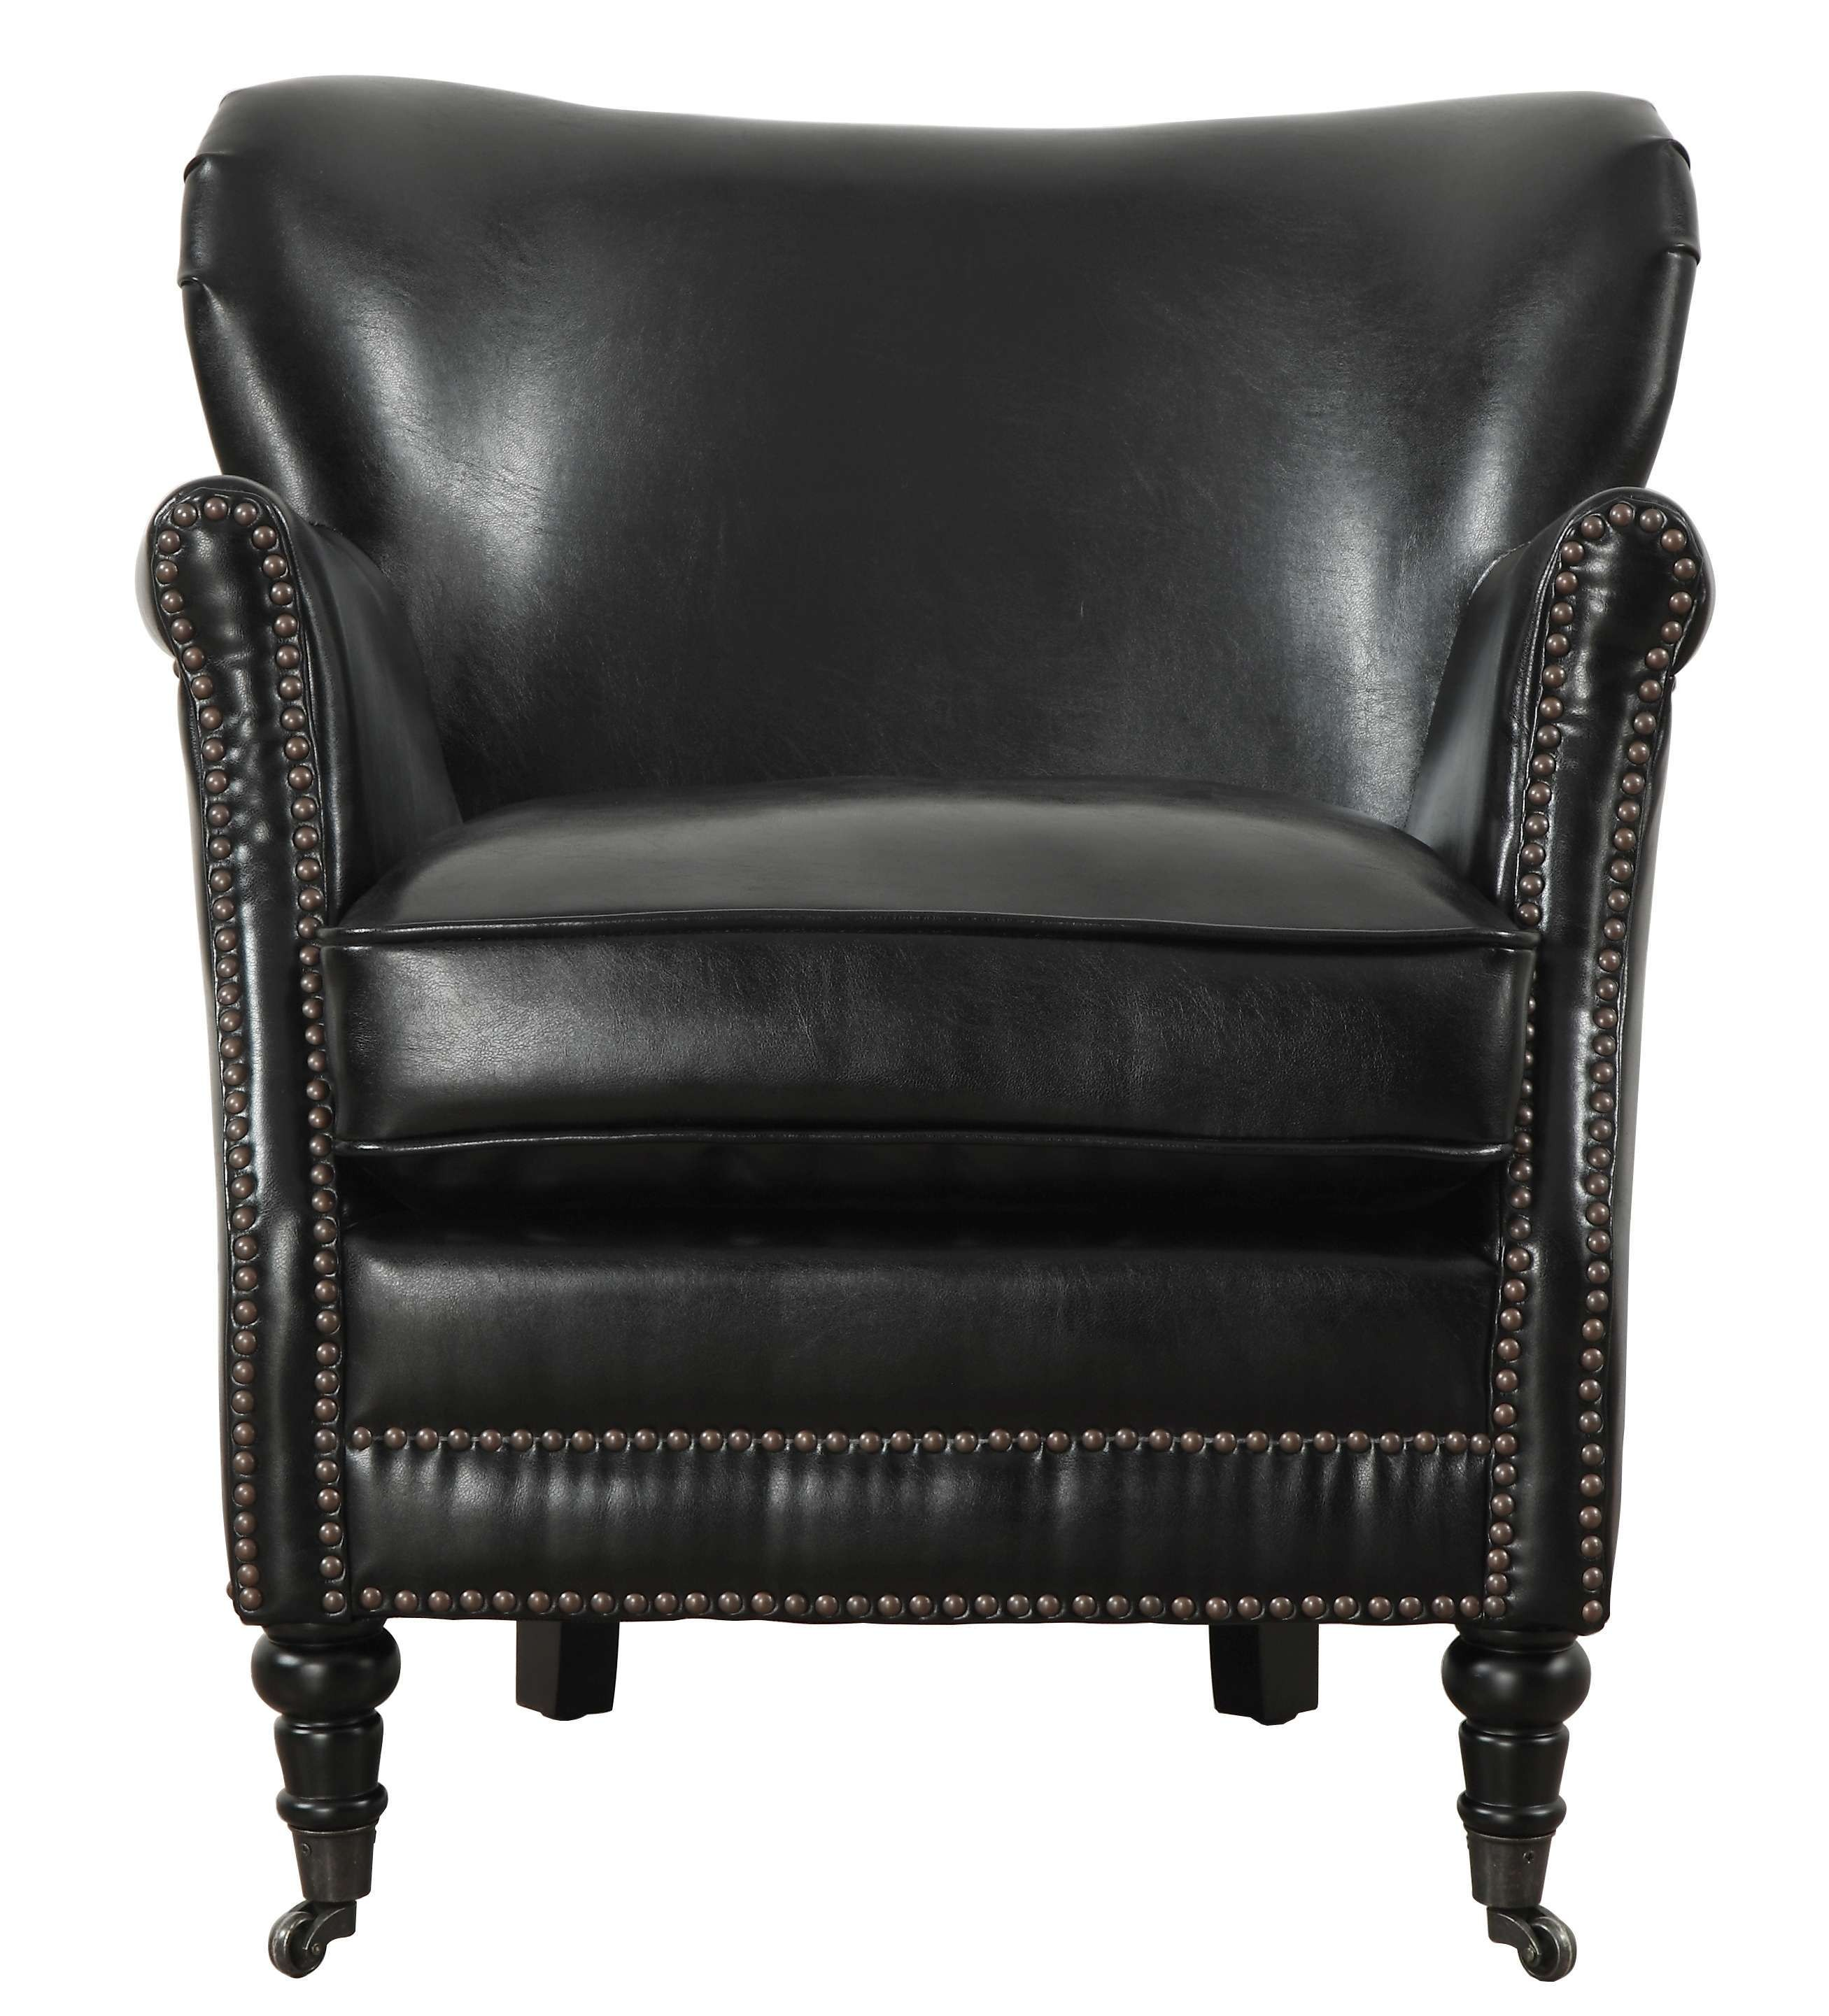 Club Chair Leather Mercer Black Leather Club Chair In Chairs And Recliners Living